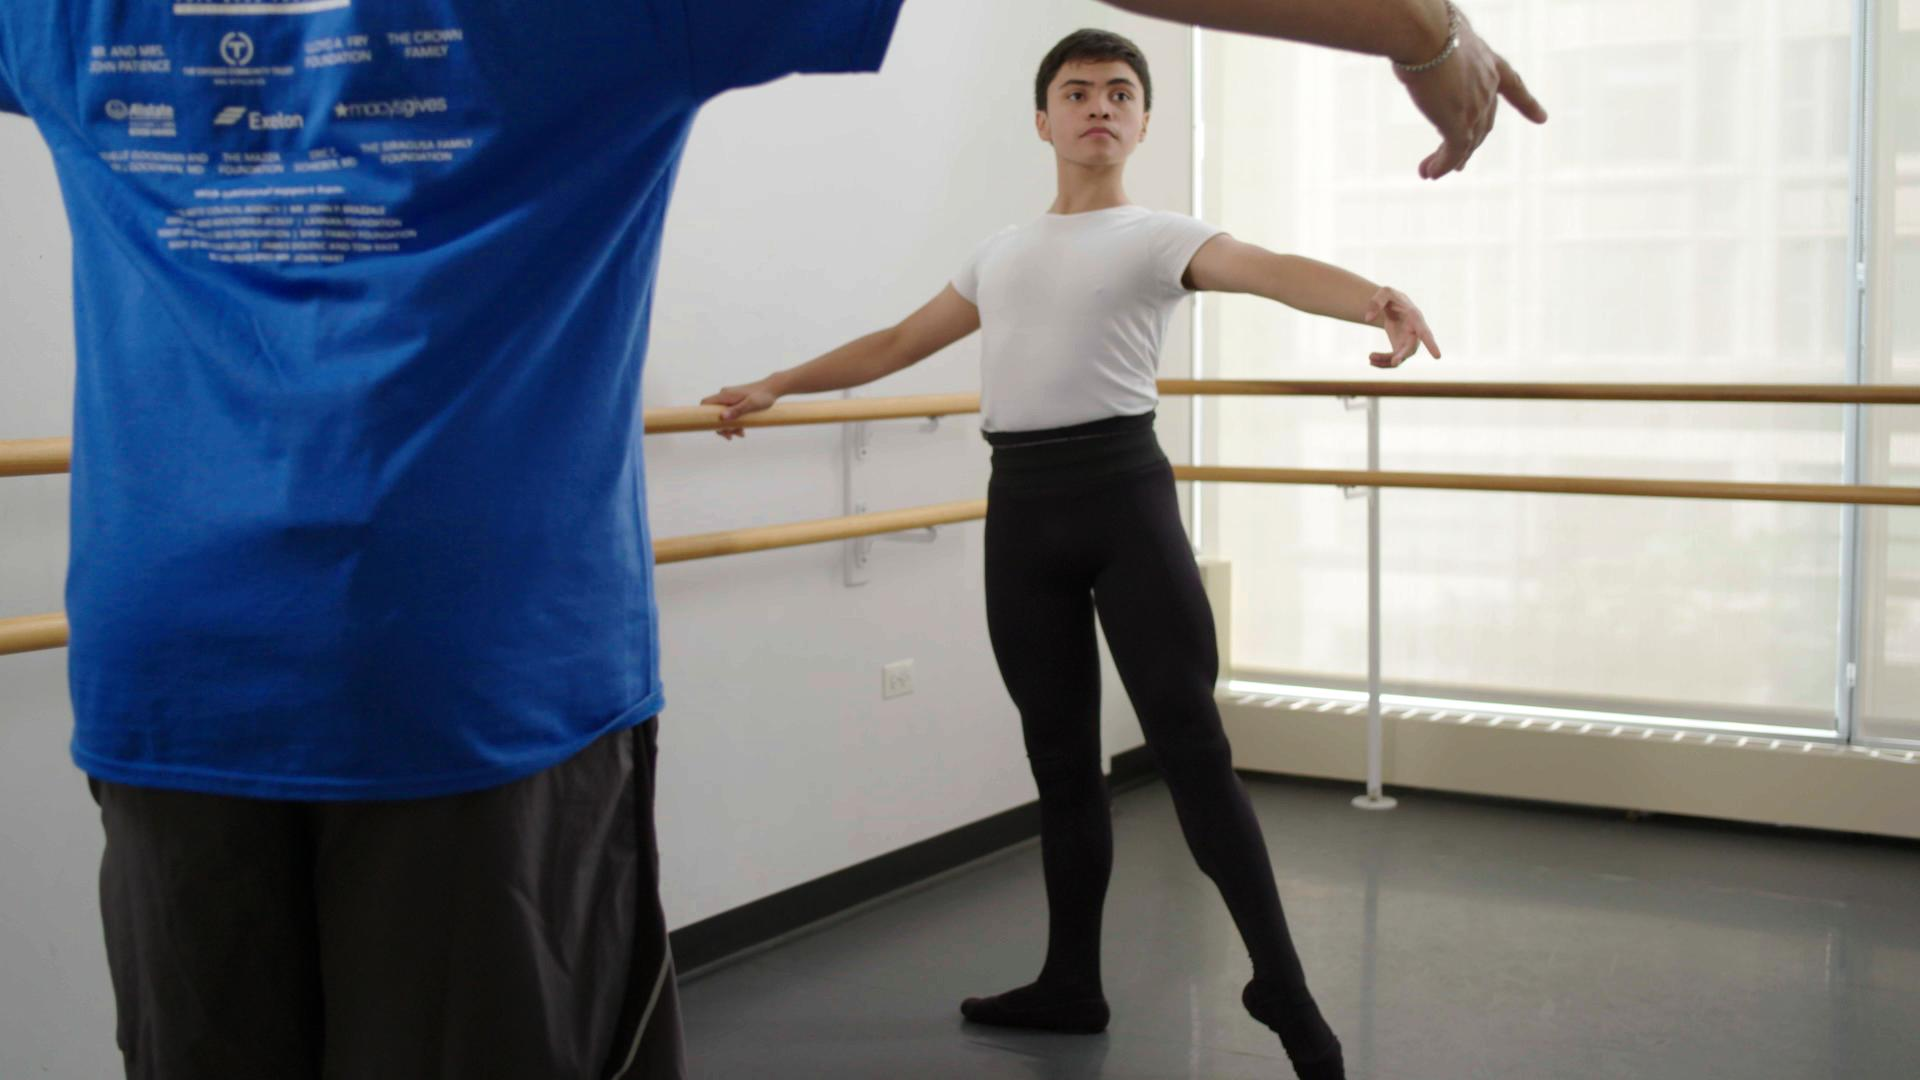 At the age of eight, Christian Ayala (now 14 began his dance journey as part of The Joffrey Ballet Beth Levine Bridge Program.